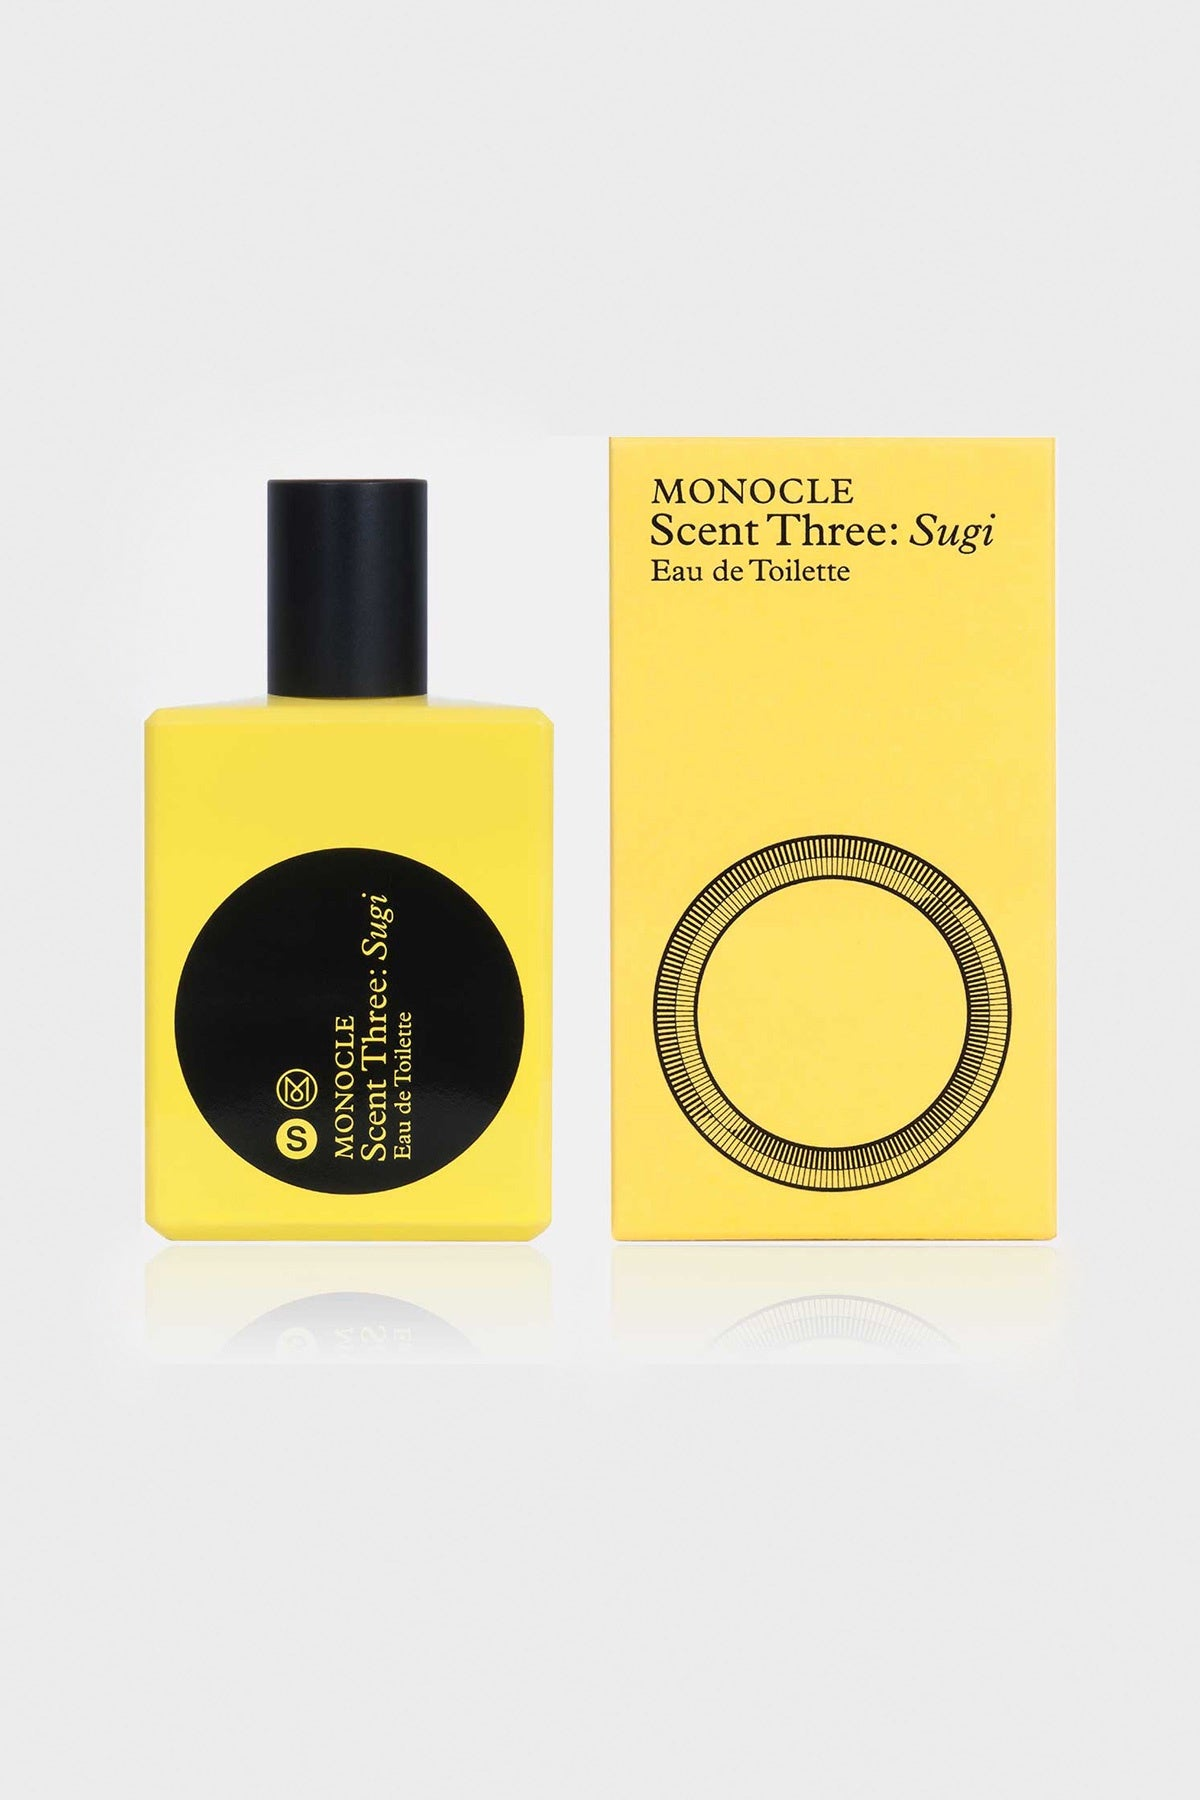 Comme des Garçons PARFUMS - Monocle Scent Three Sugi Eau de Toilette - 50ml Natural Spray - Canoe Club